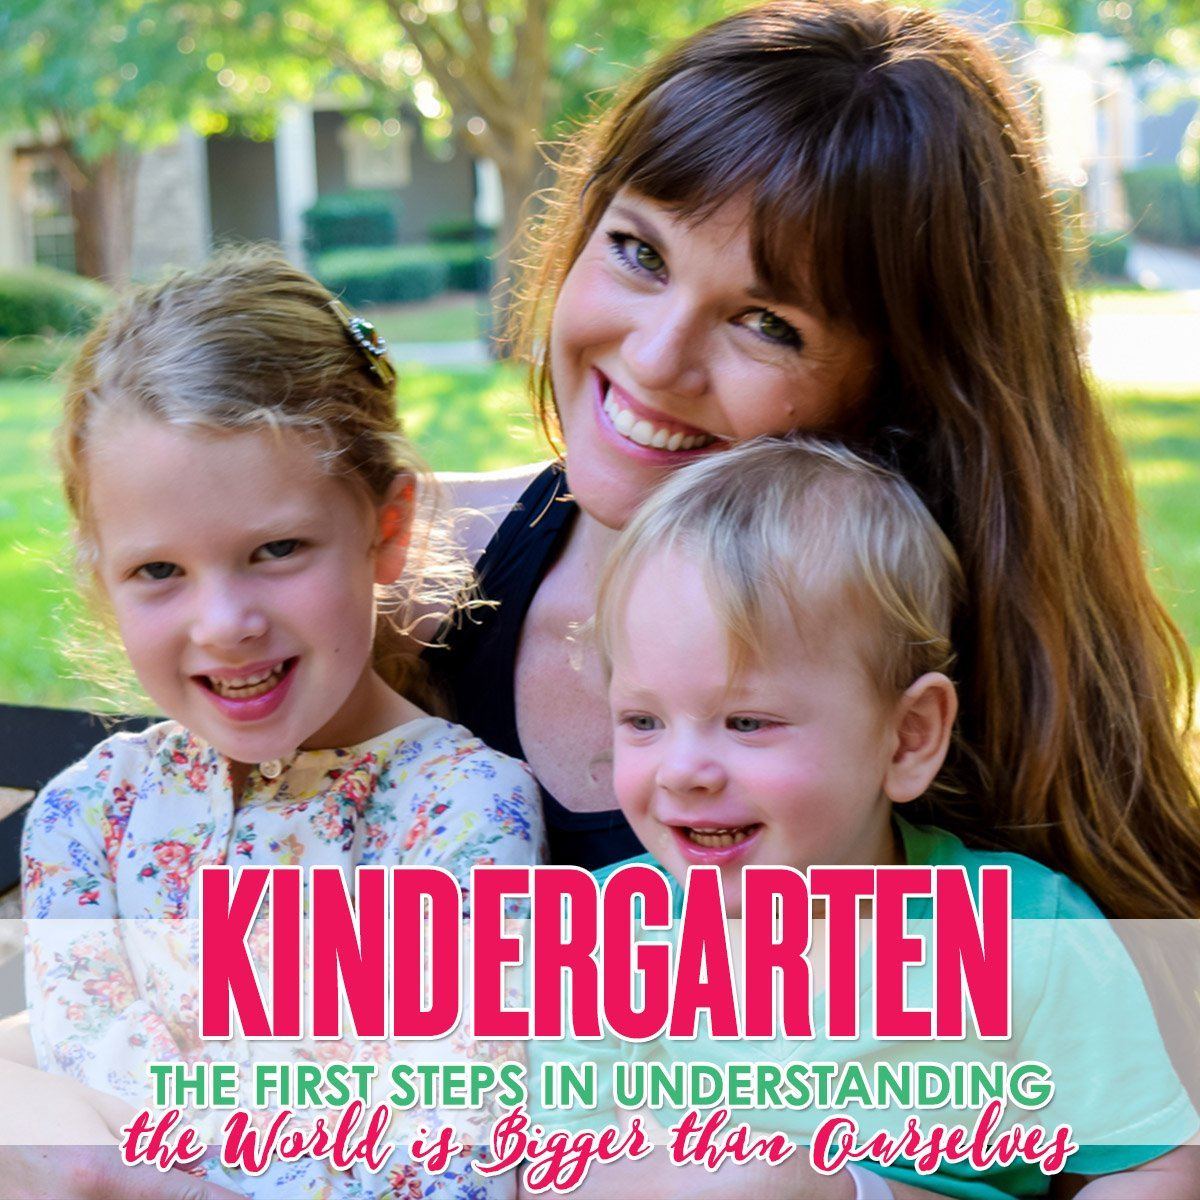 Kindergarten: The First Steps in Understanding the World is Bigger Than Ourselves 1 Daily Mom Parents Portal